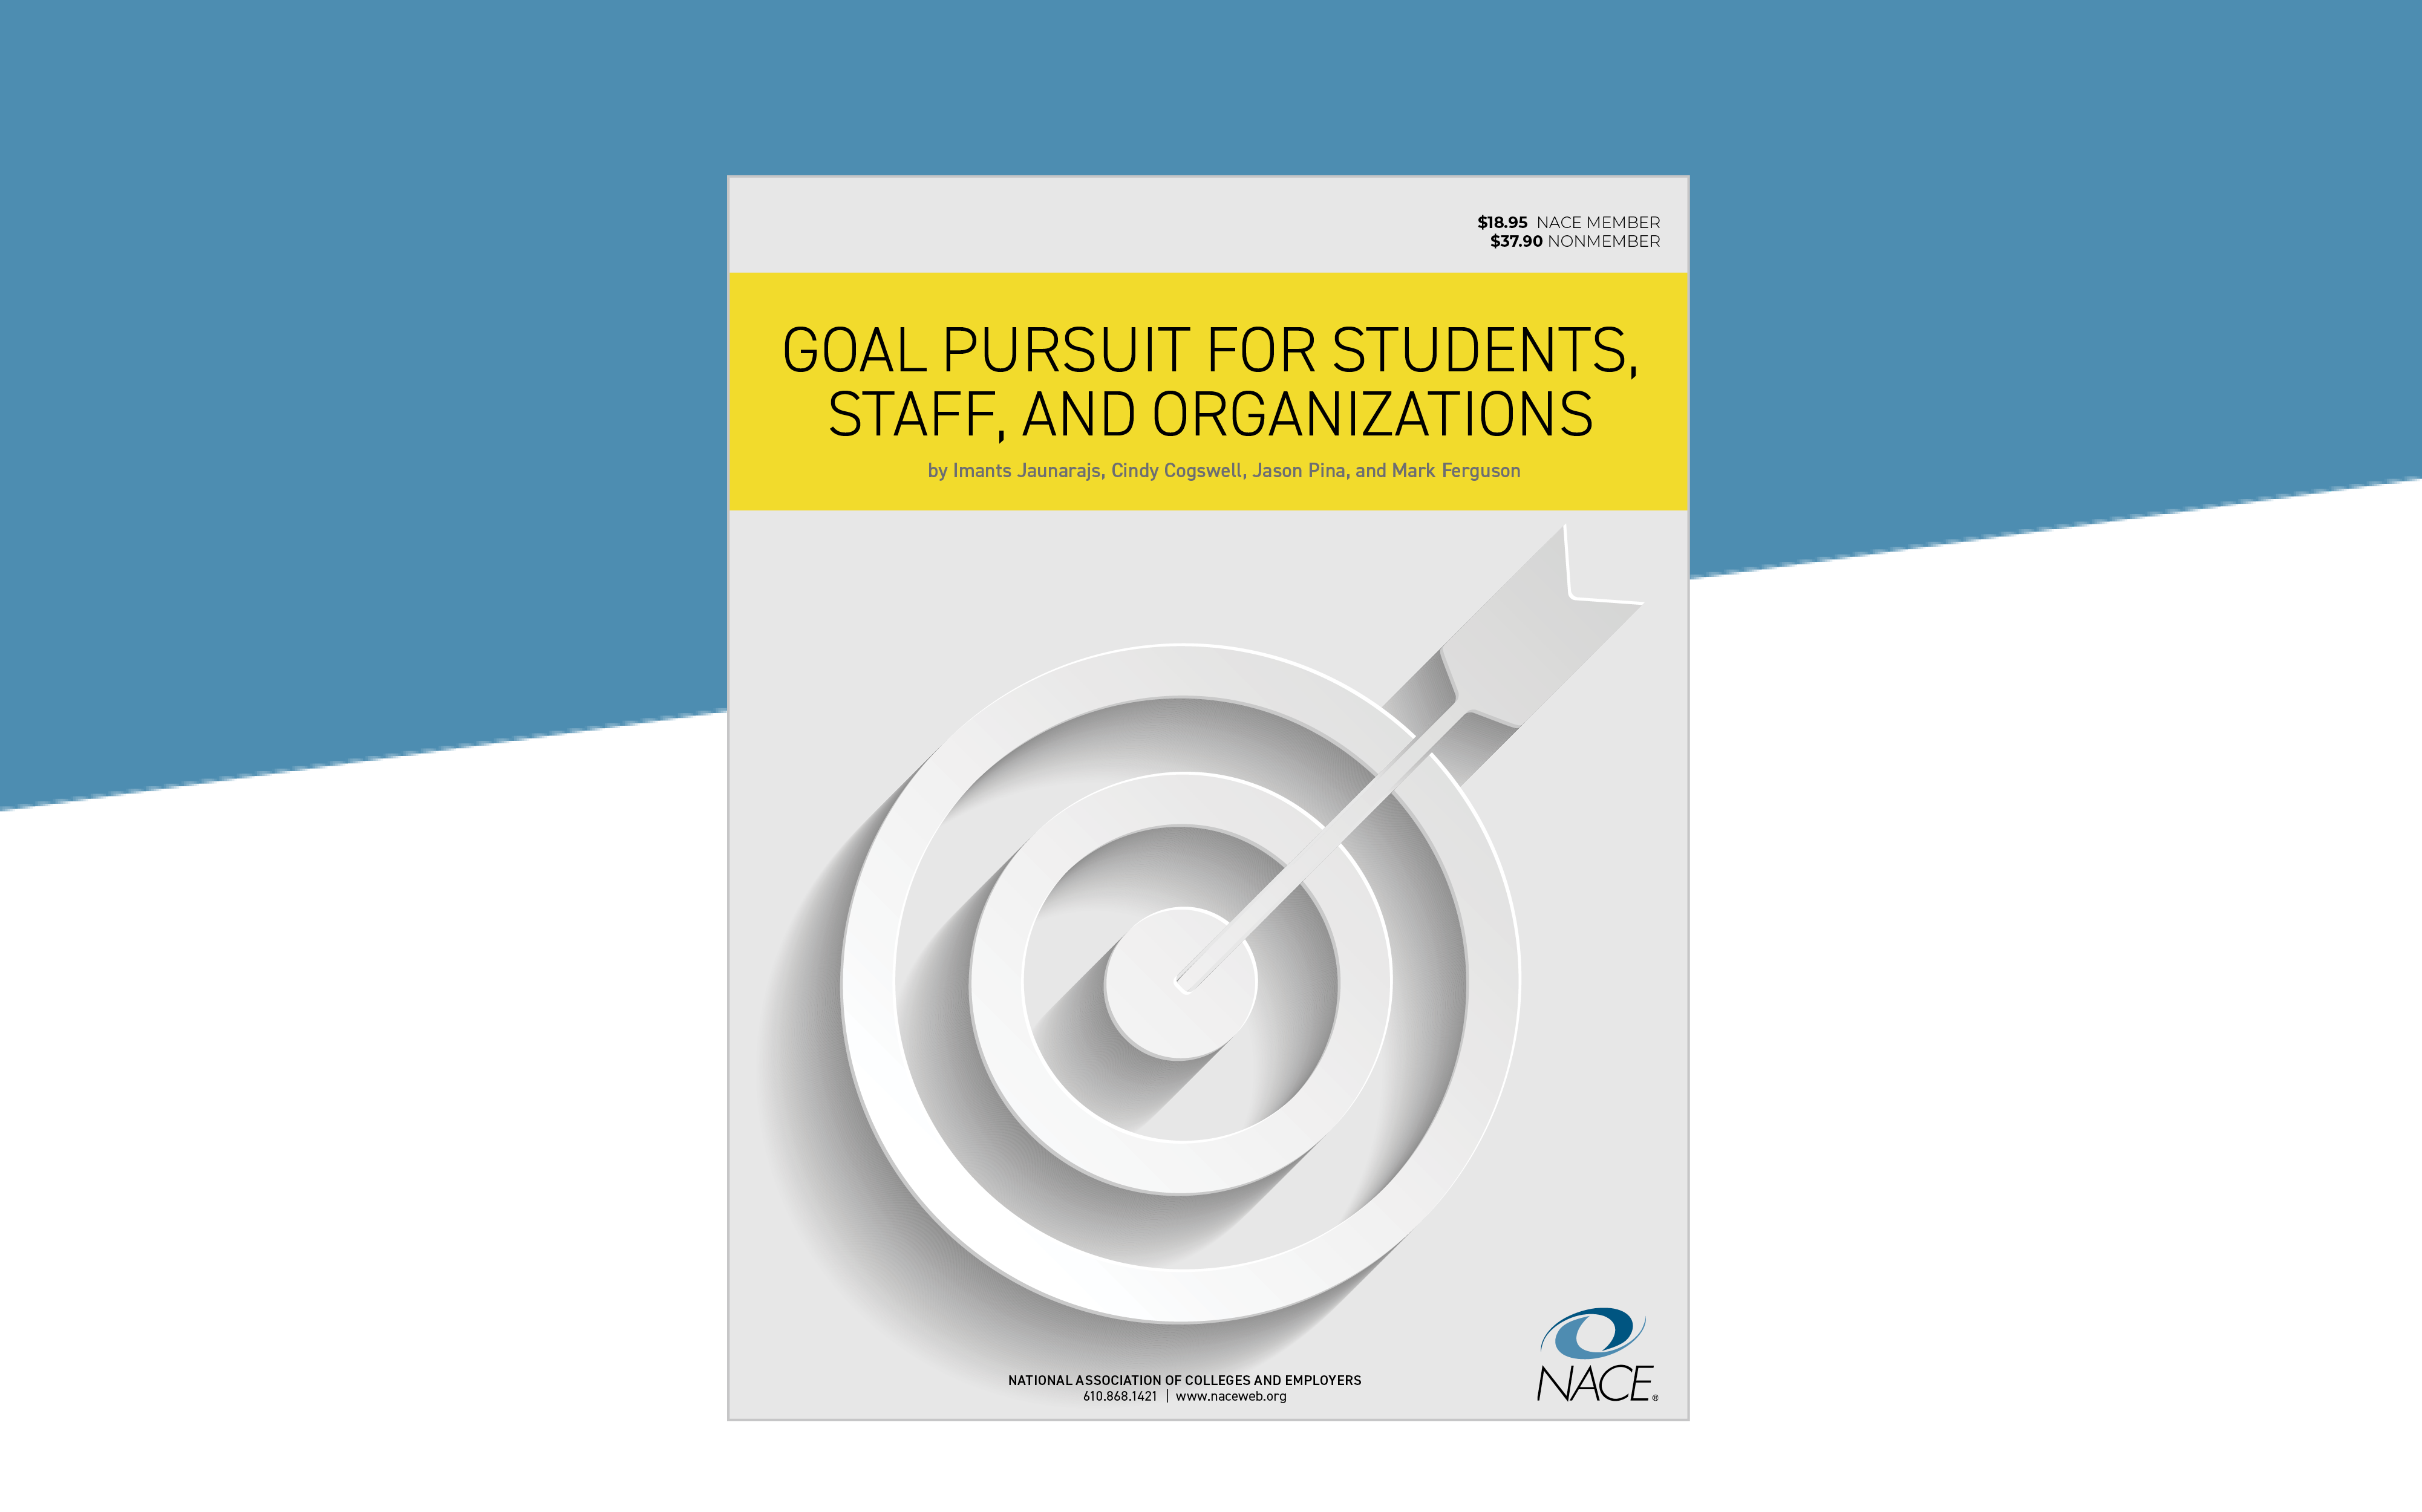 NACE Monograph: Goal Pursuit for Students, Staff, and Organizations